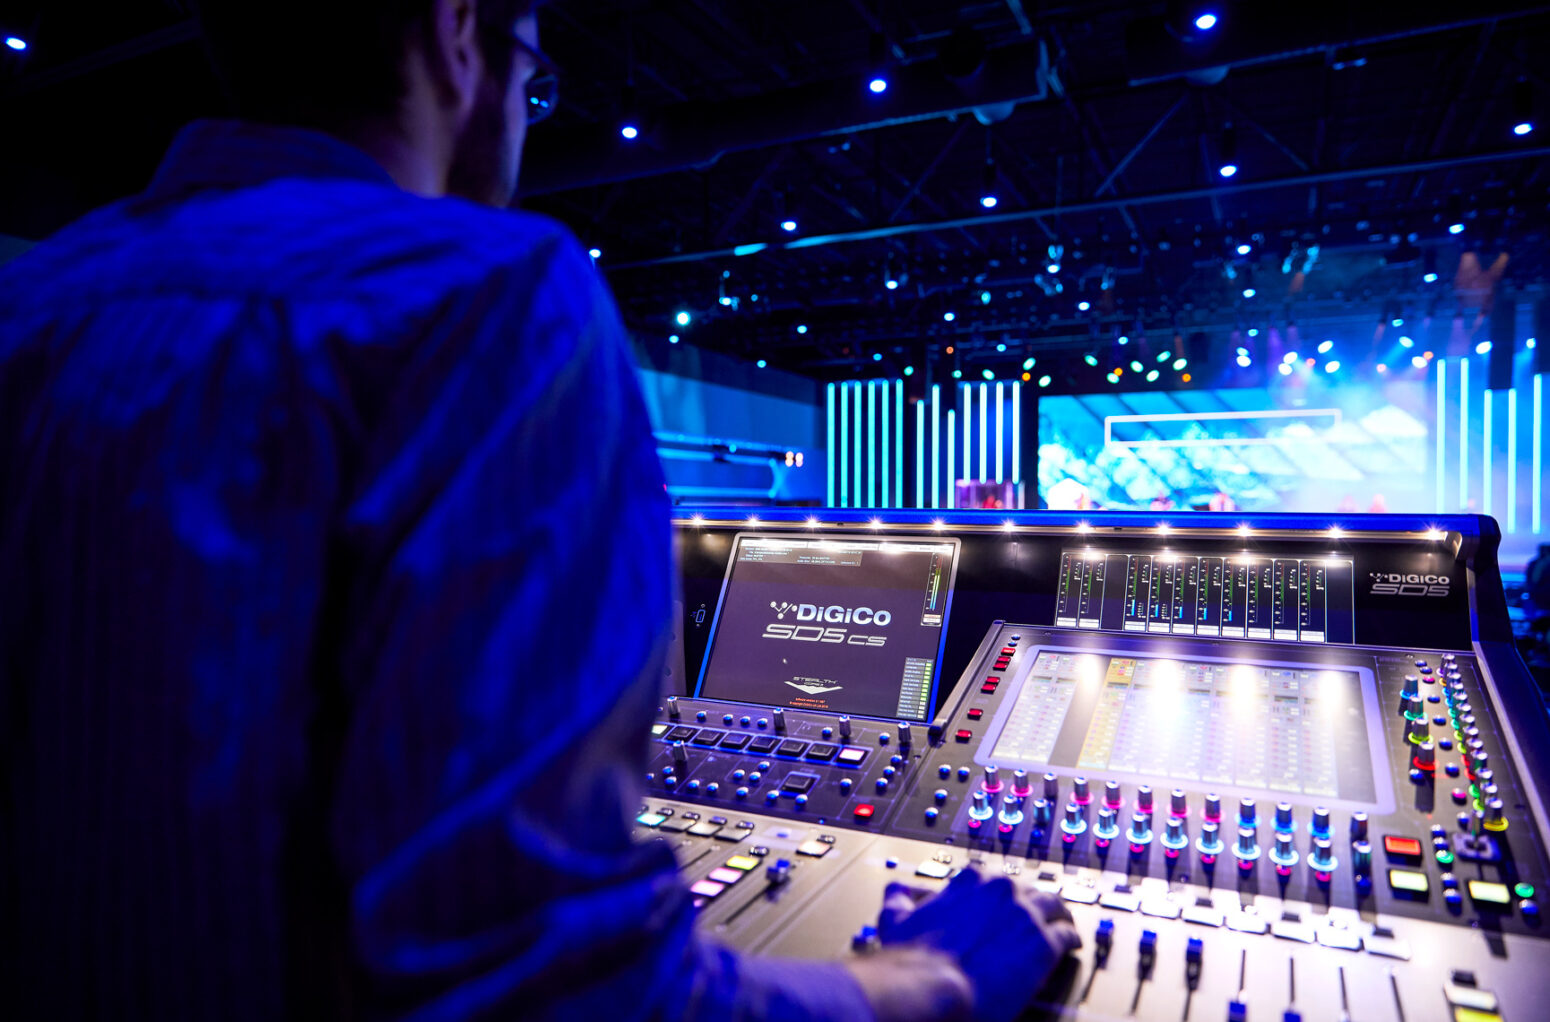 Managing the church stage lighting system and speakers is easy with this state-of-the-art equipment.